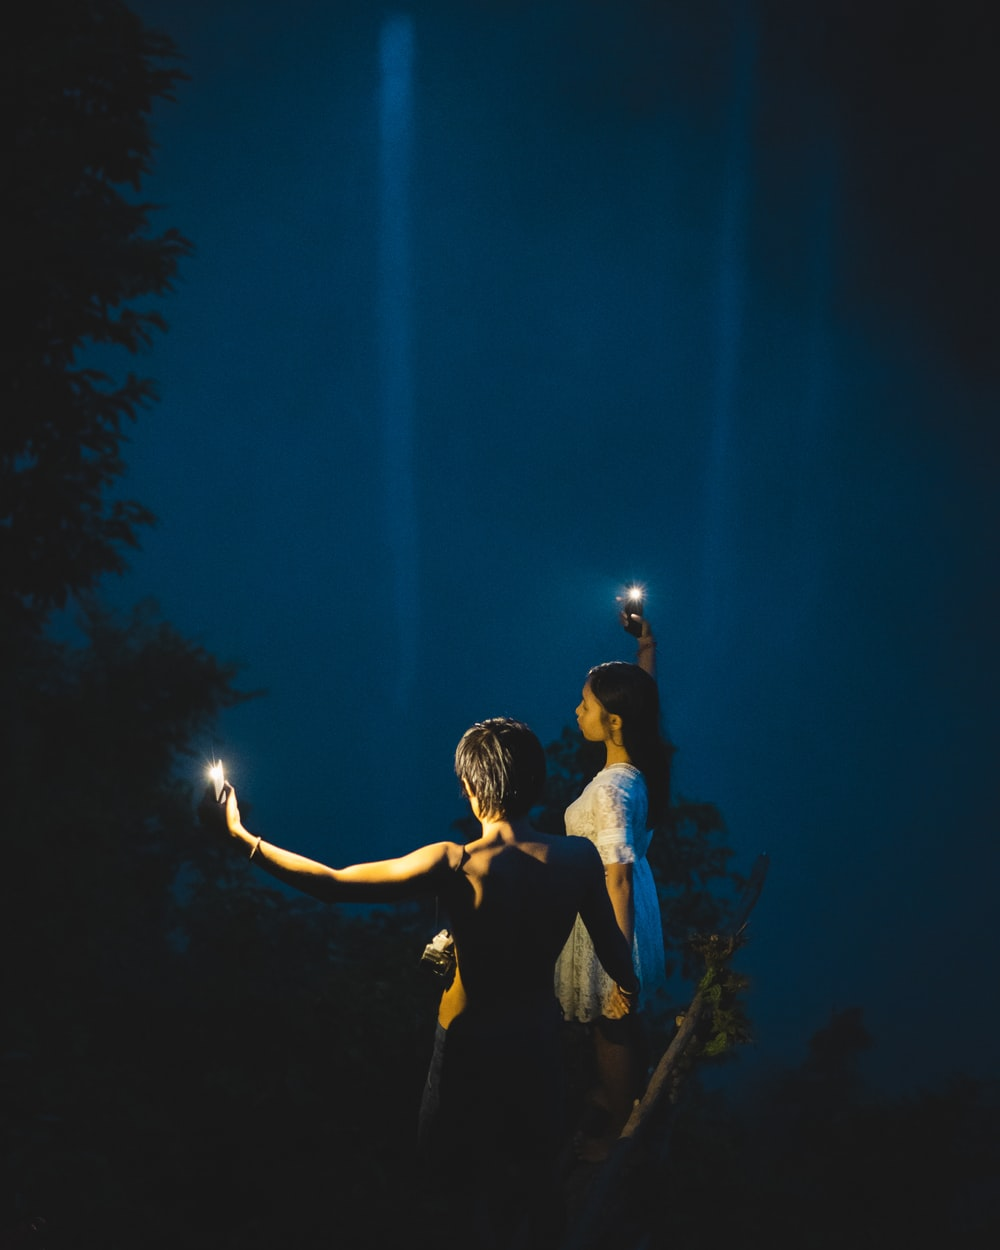 man and woman kissing during night time